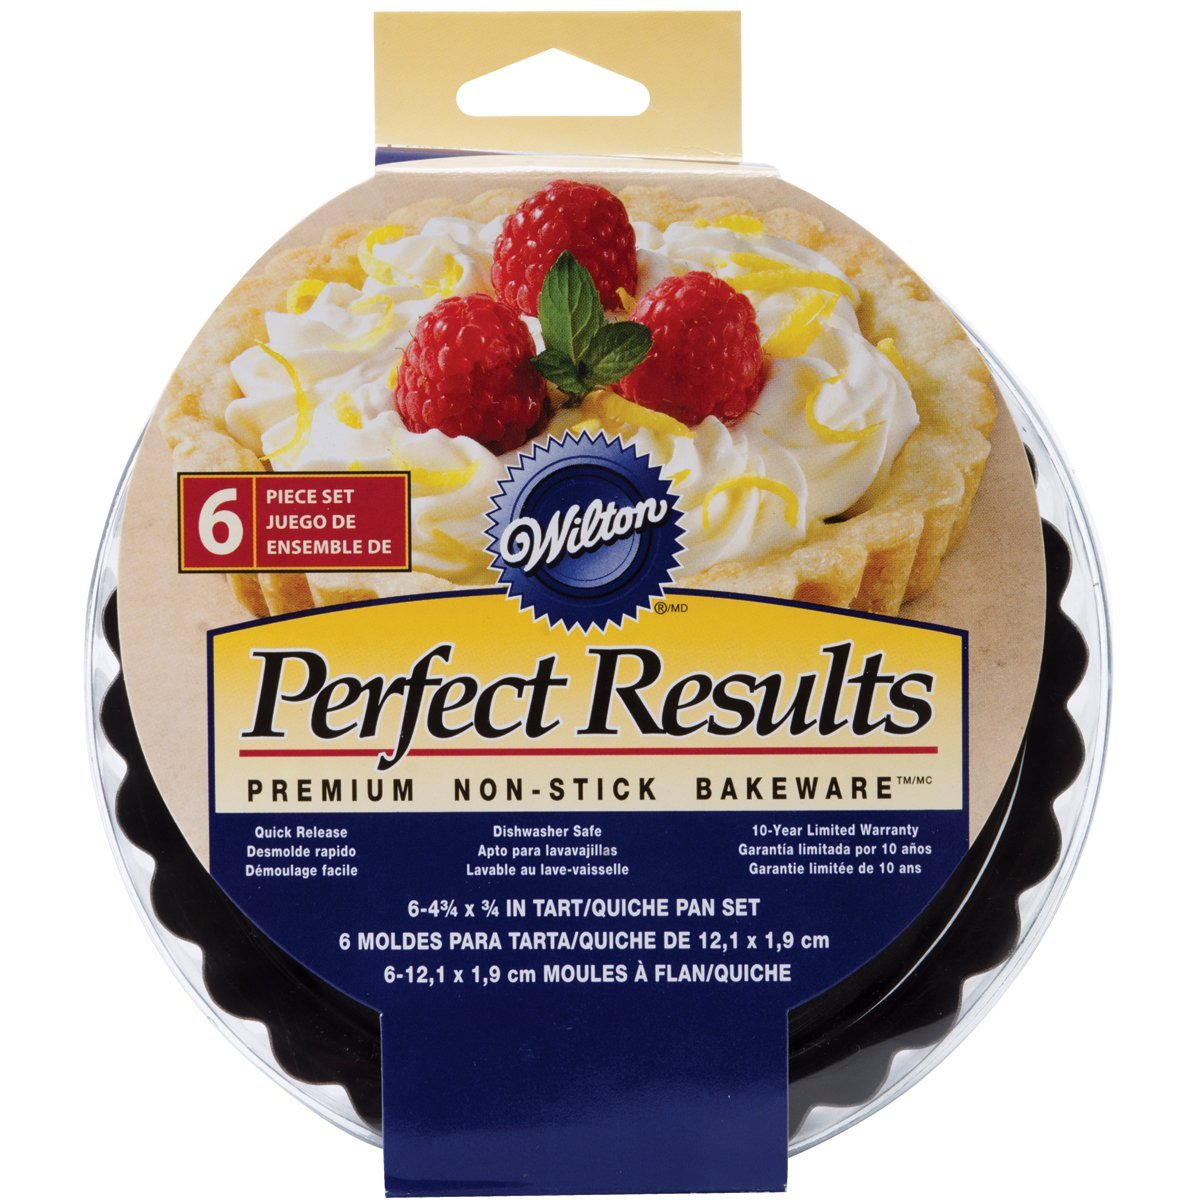 Wilton Perfect Results Premium Non-Stick Bakeware Round Tart and Quiche Pans, Sunday Brunch May Never be the Same Again, Fluted Edges Add a Touch of Flair, 4.75 Inch, Set of 6 by Wilton